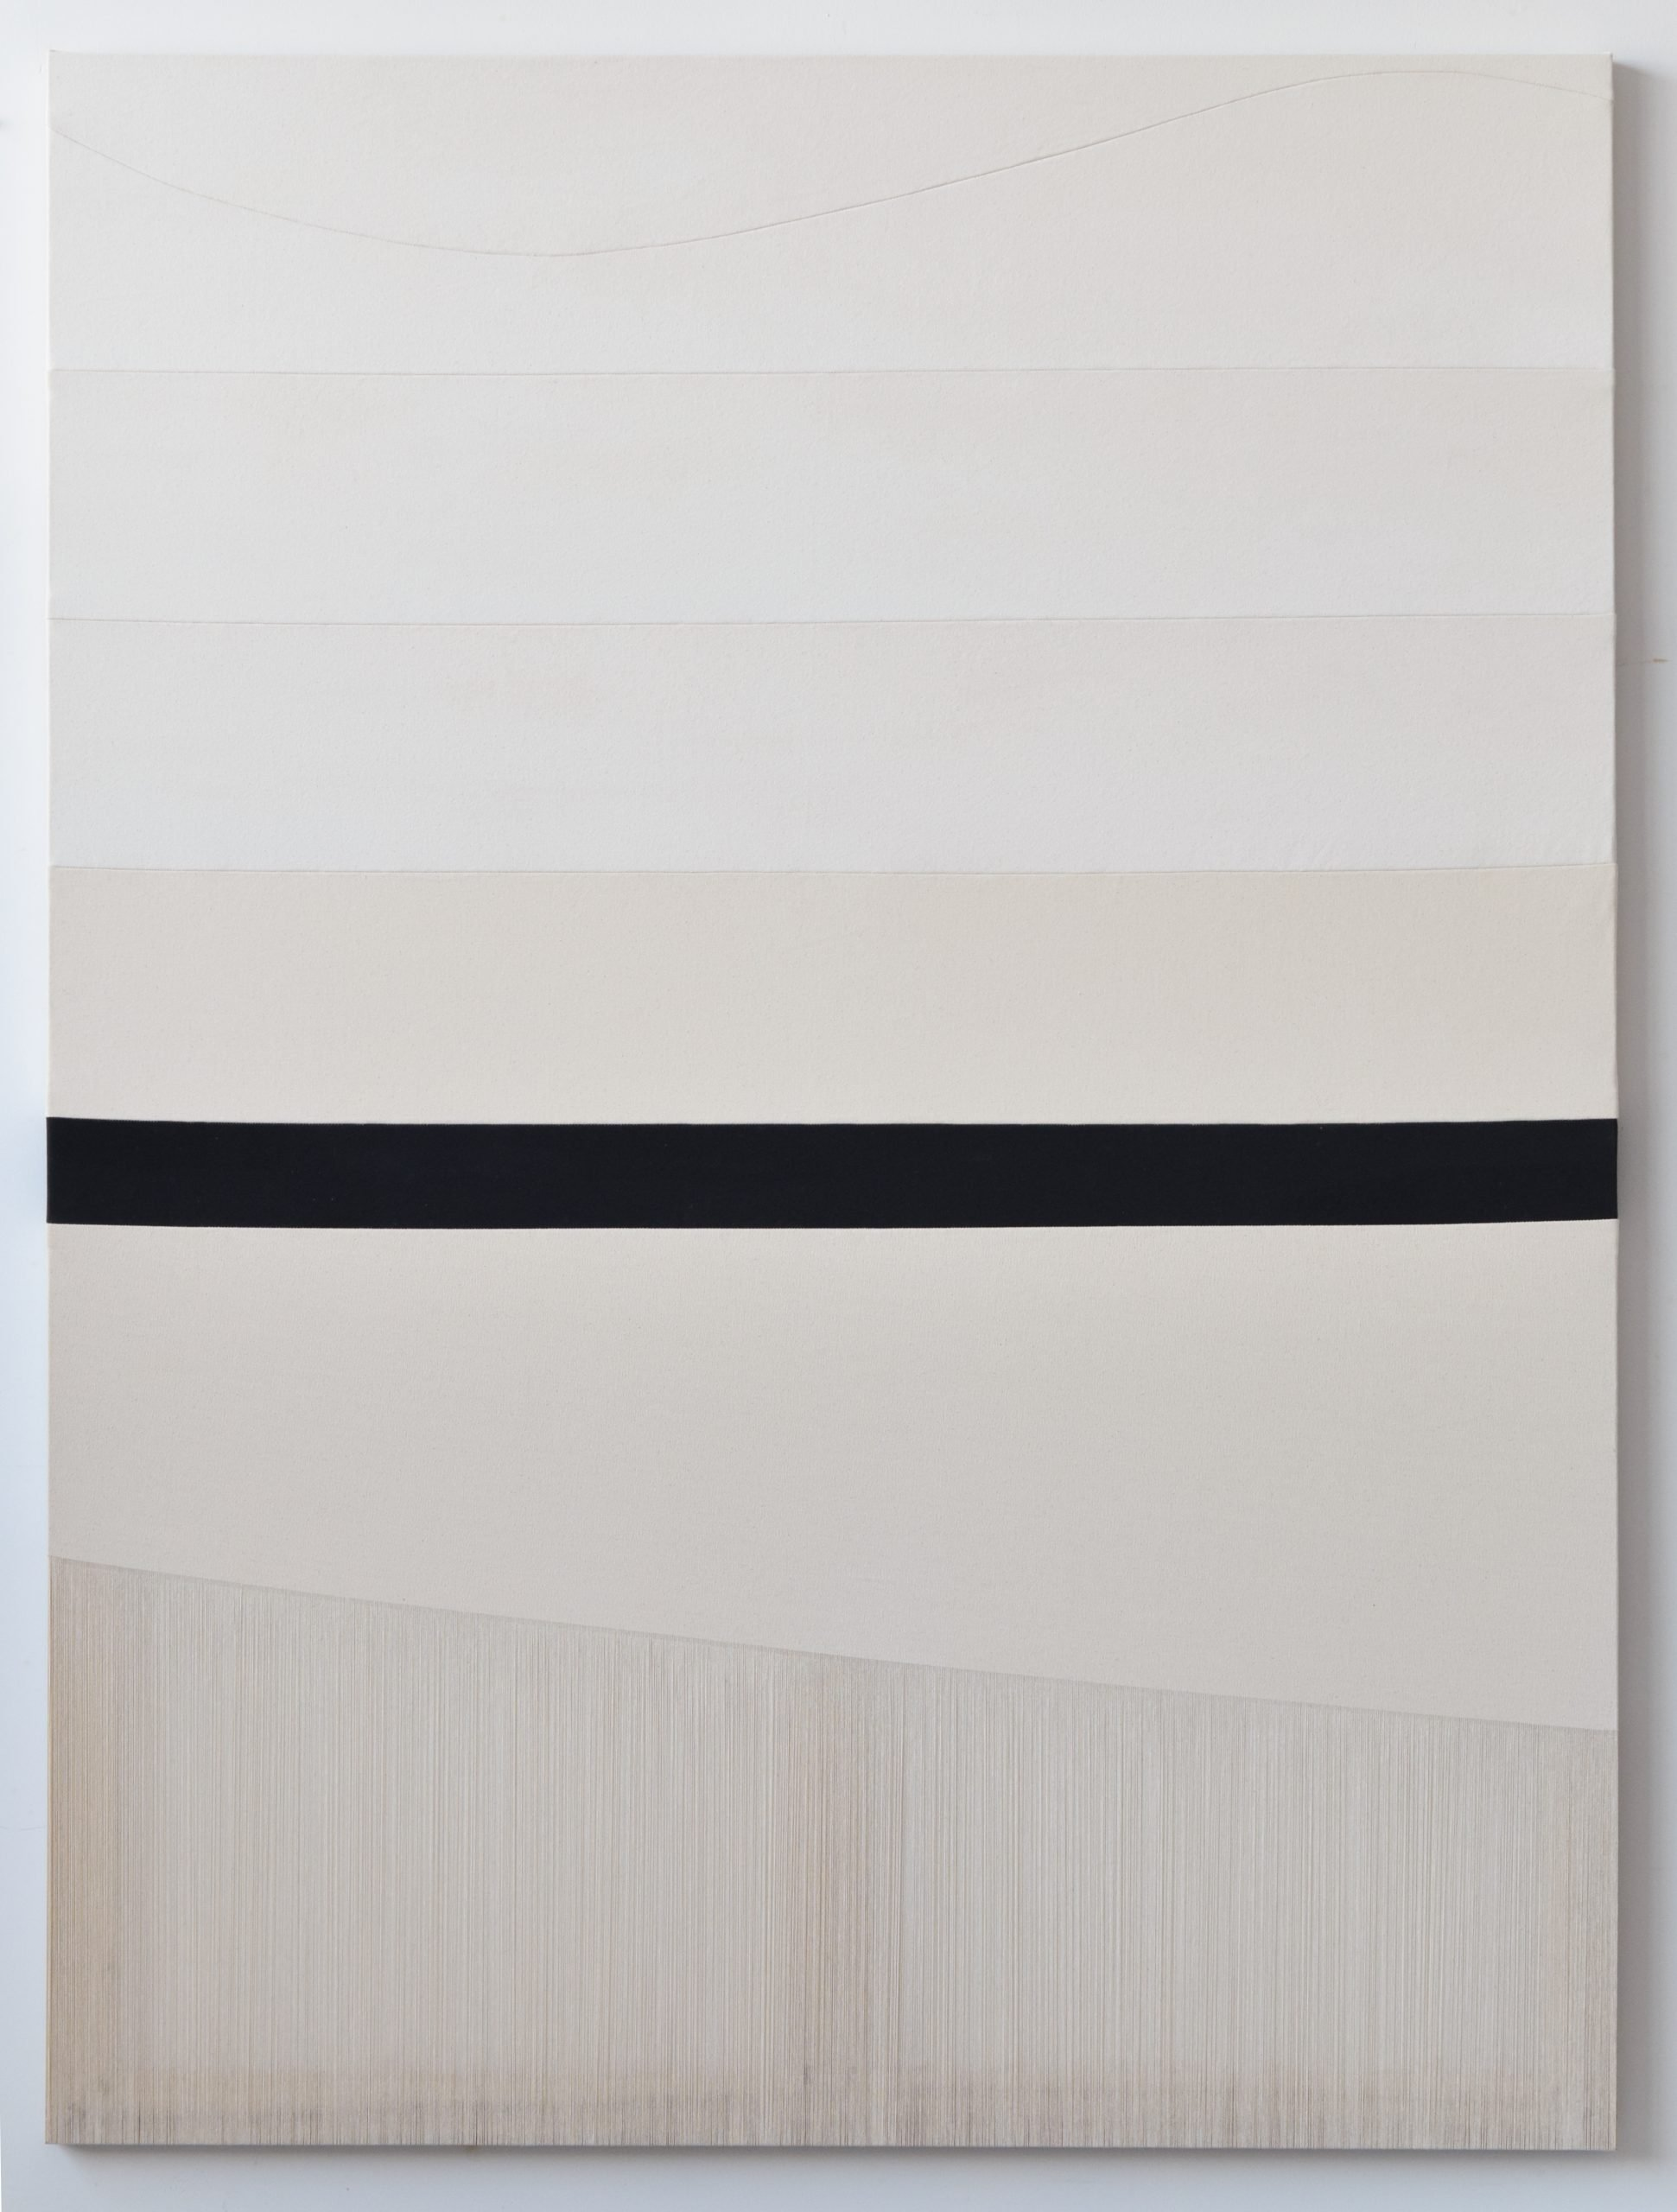 Rebecca Ward, the hum, 2019, acrylic on stitched canvas, 64 x 48 in, 162.6 x 121.9 cm, RWa302535